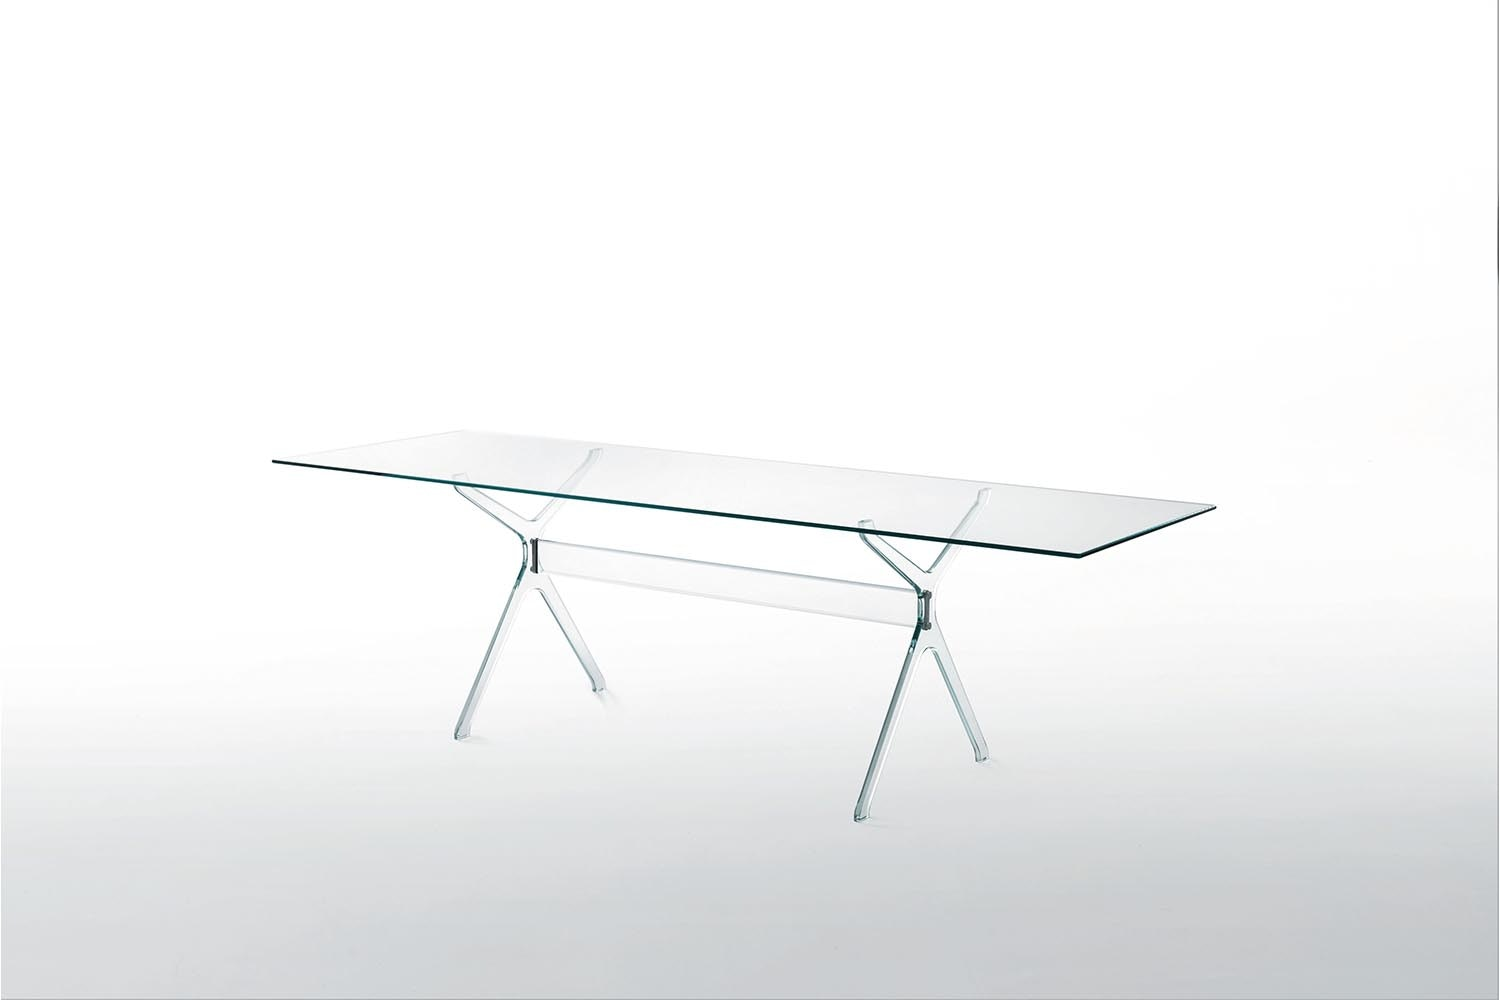 Vitruvian Table by Piero Lissoni for Glas Italia